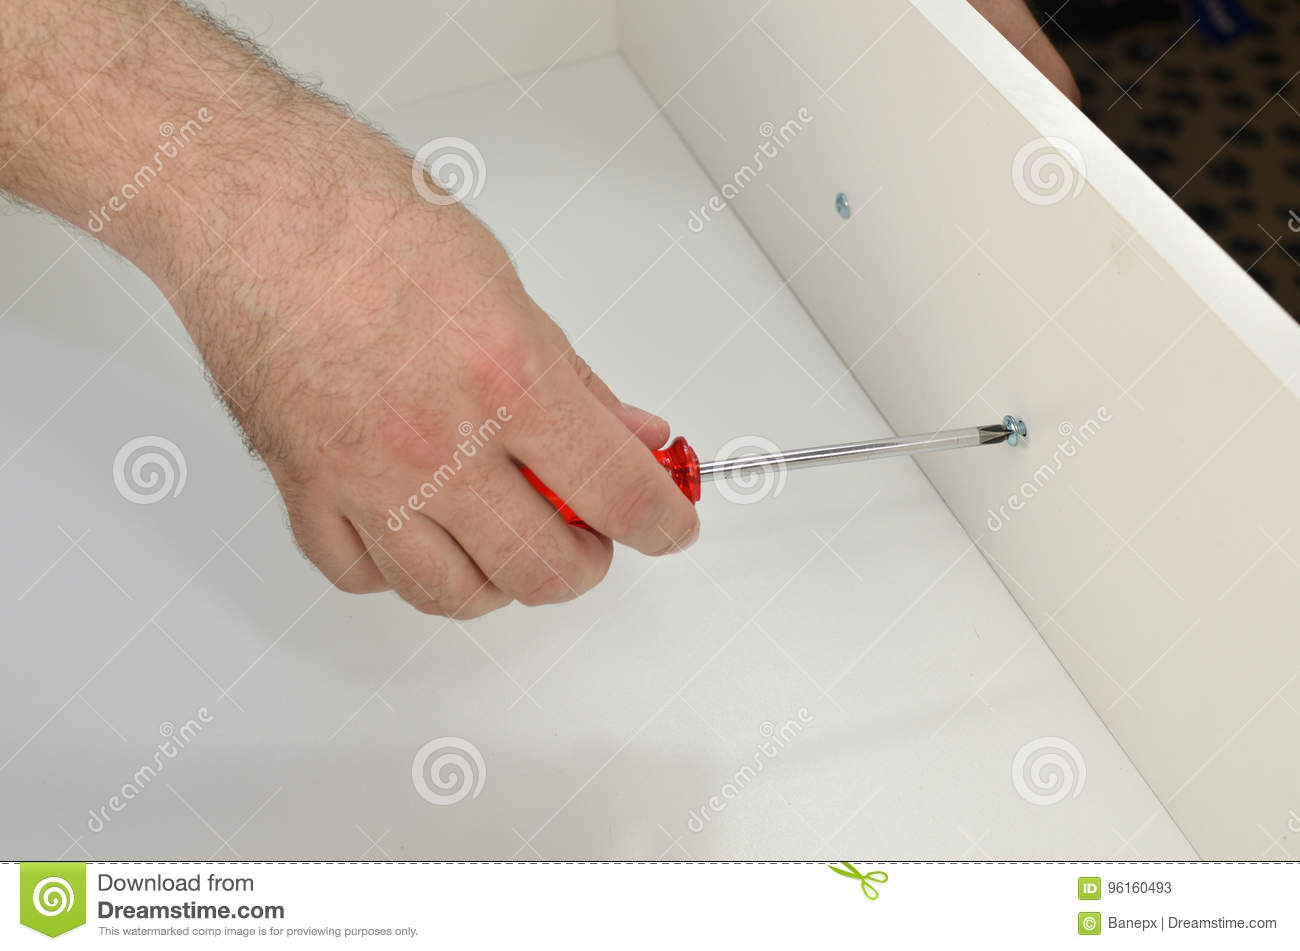 Man is Fixing a Drawer Pull